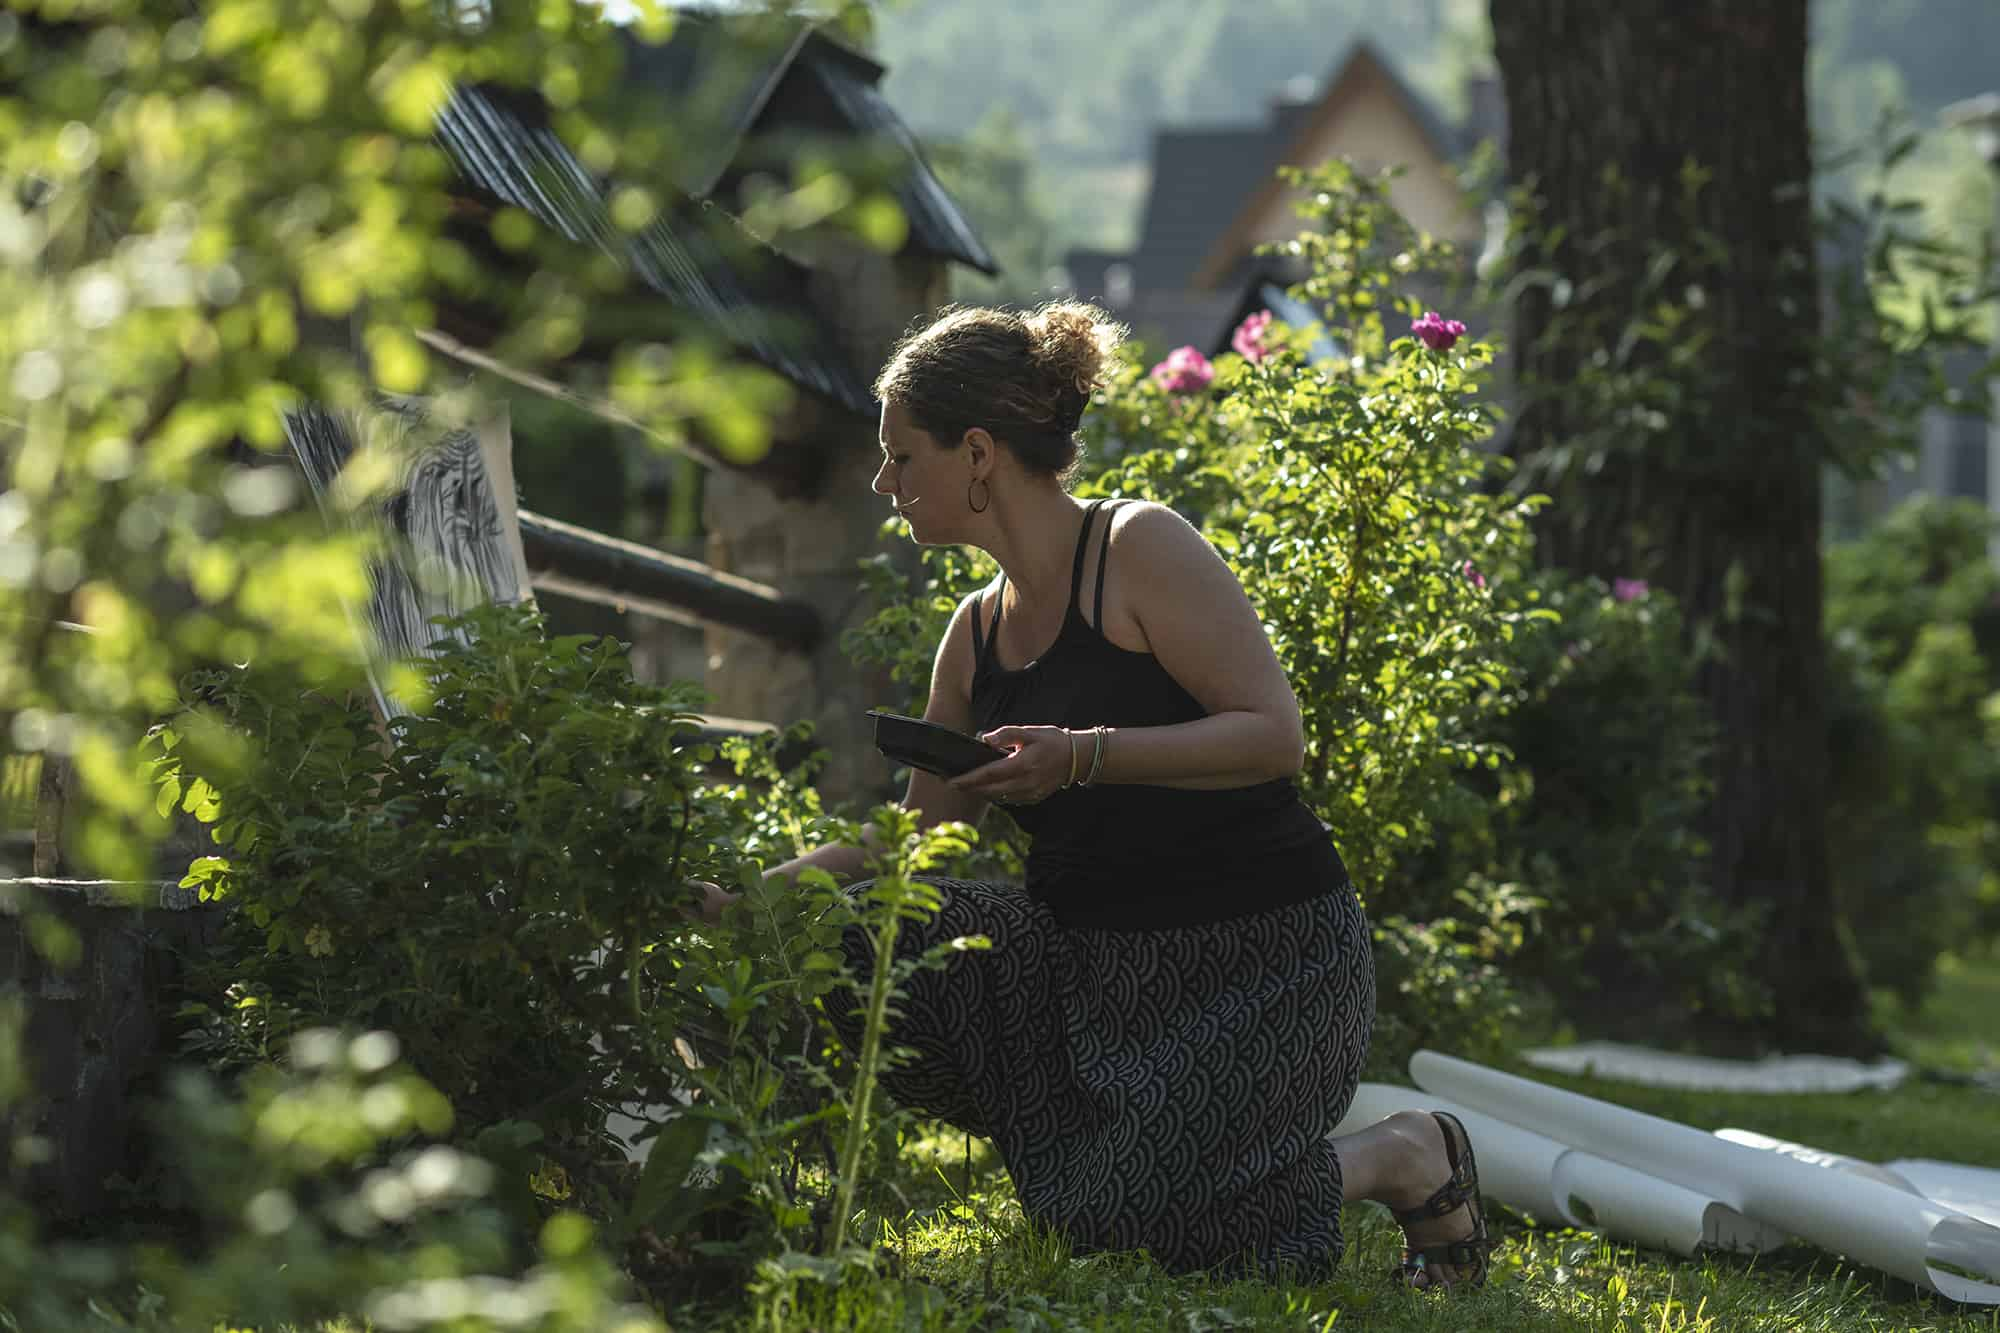 Workshops at Podhale, Nature is My Homeland, photo by Edyta Dufaj, courtesy: Nature is My Homeland